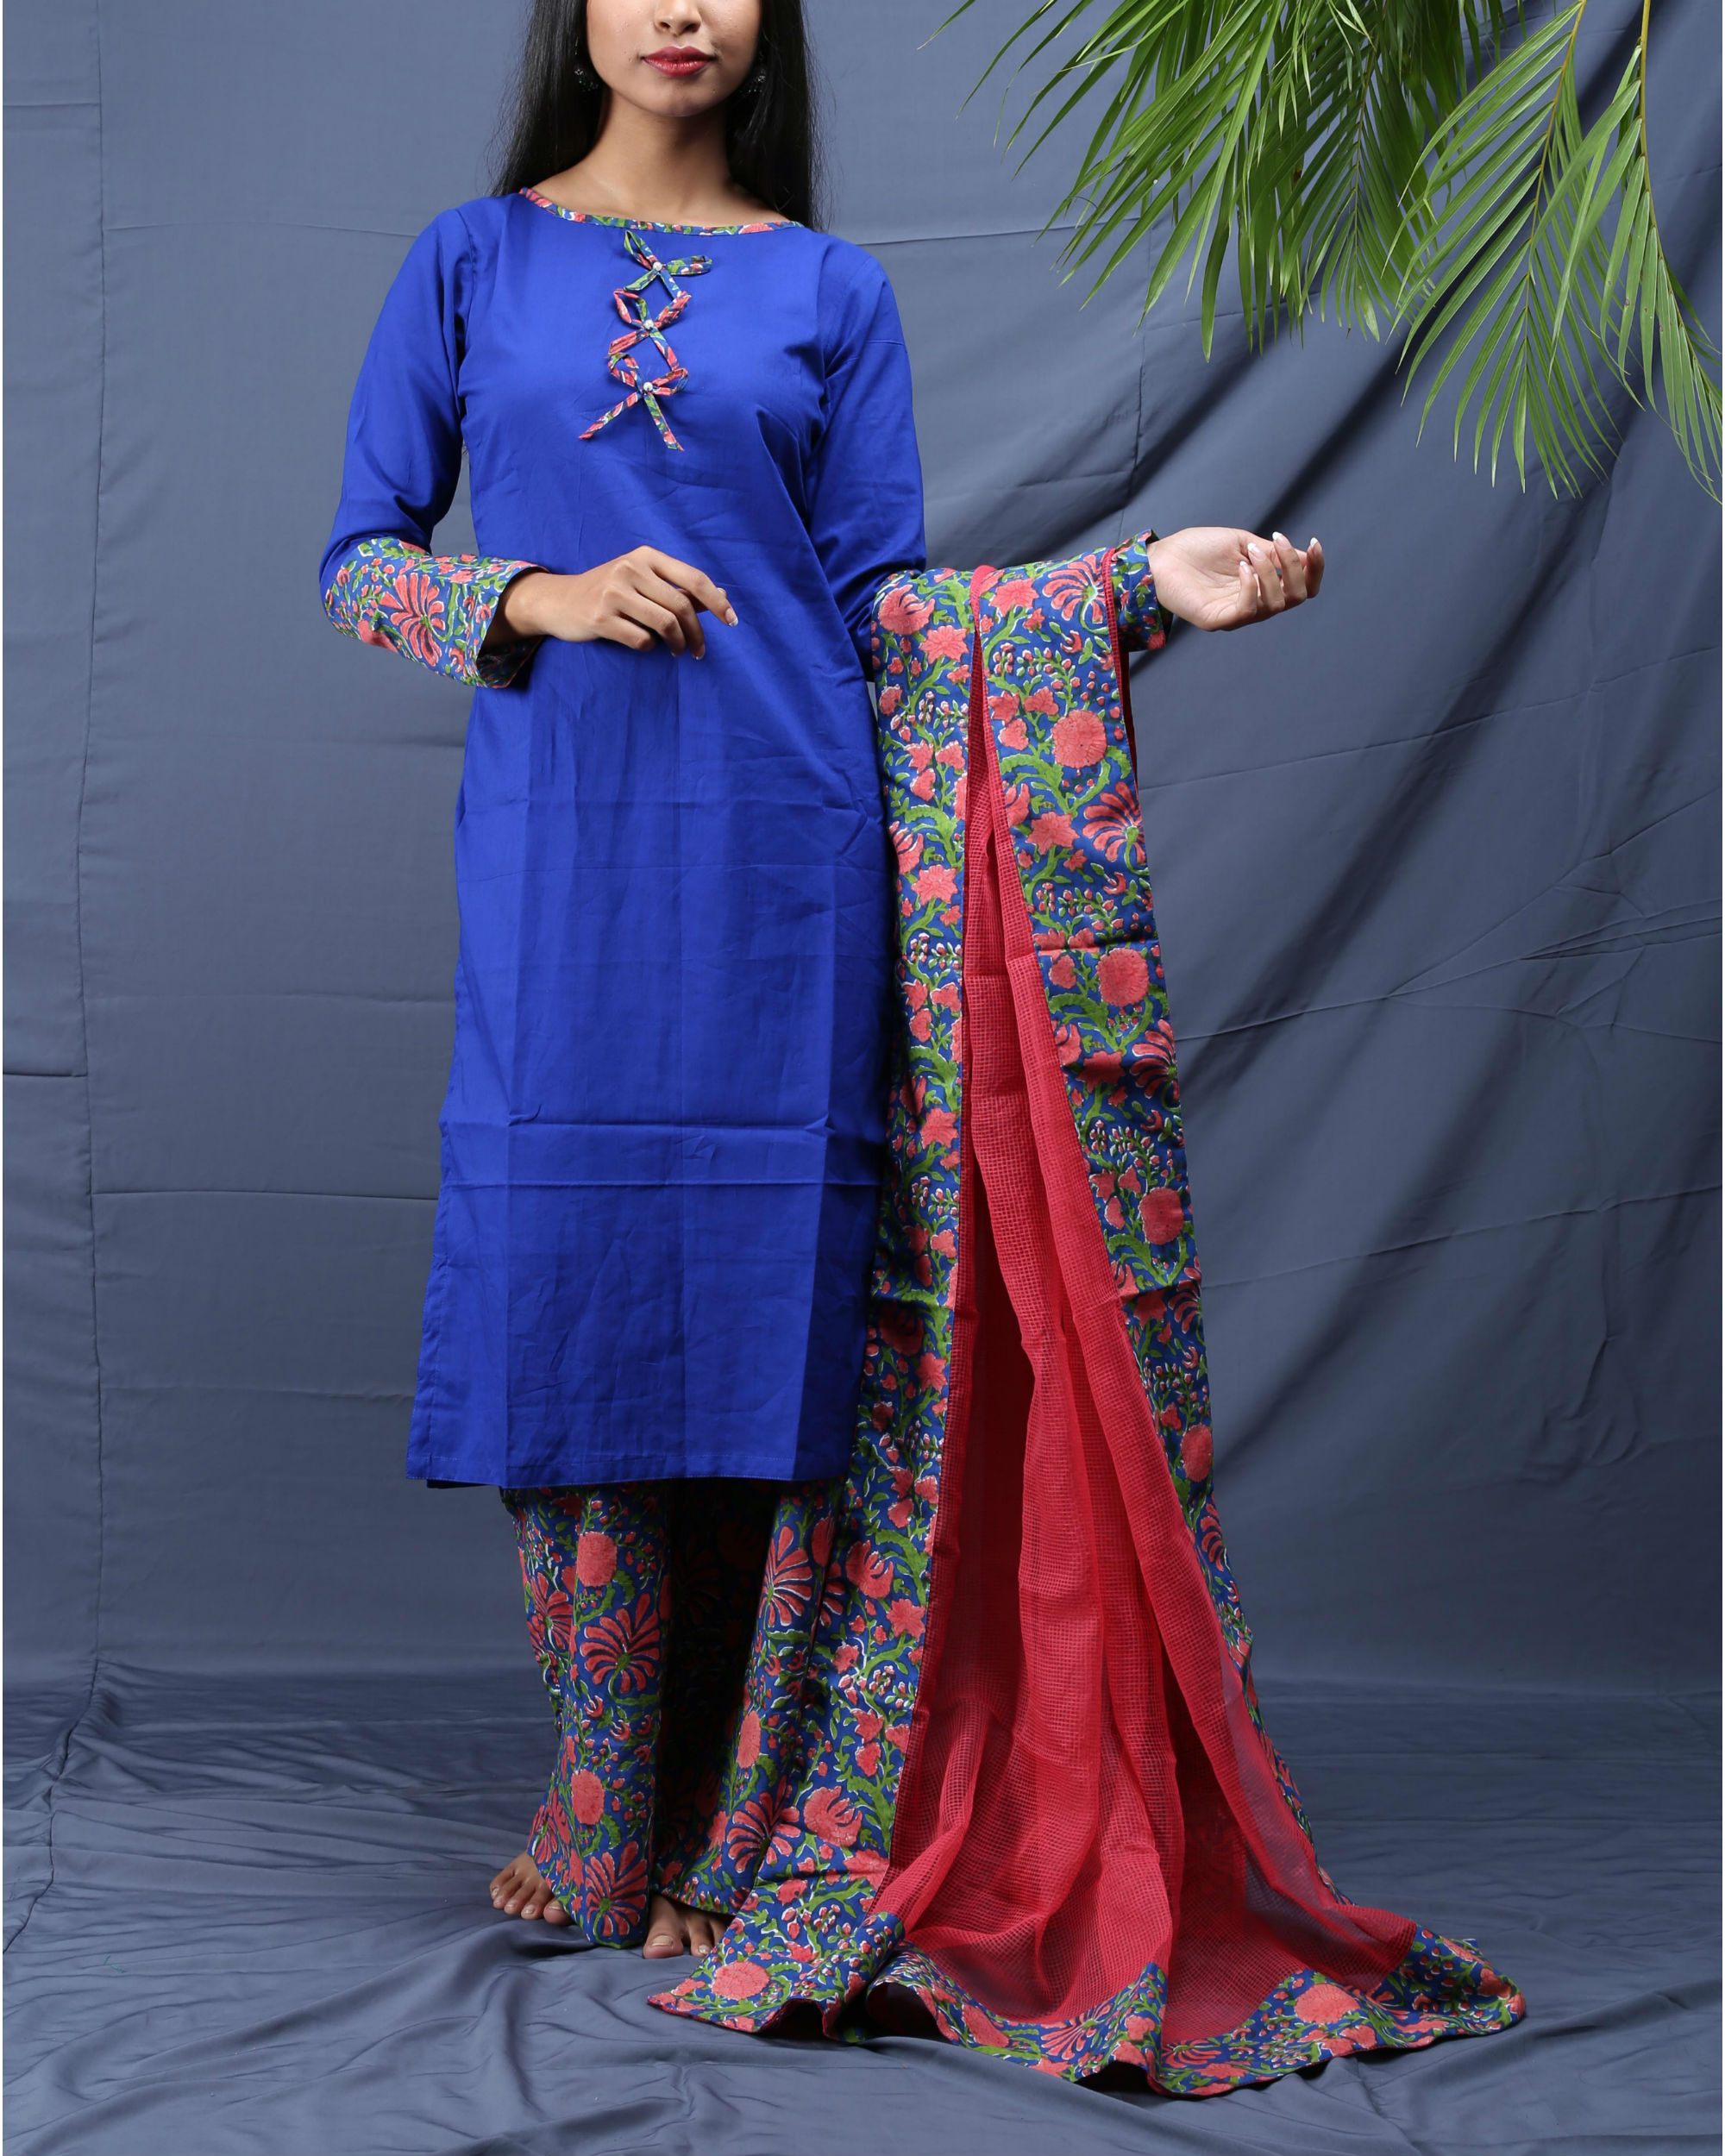 Panache block printed suit set